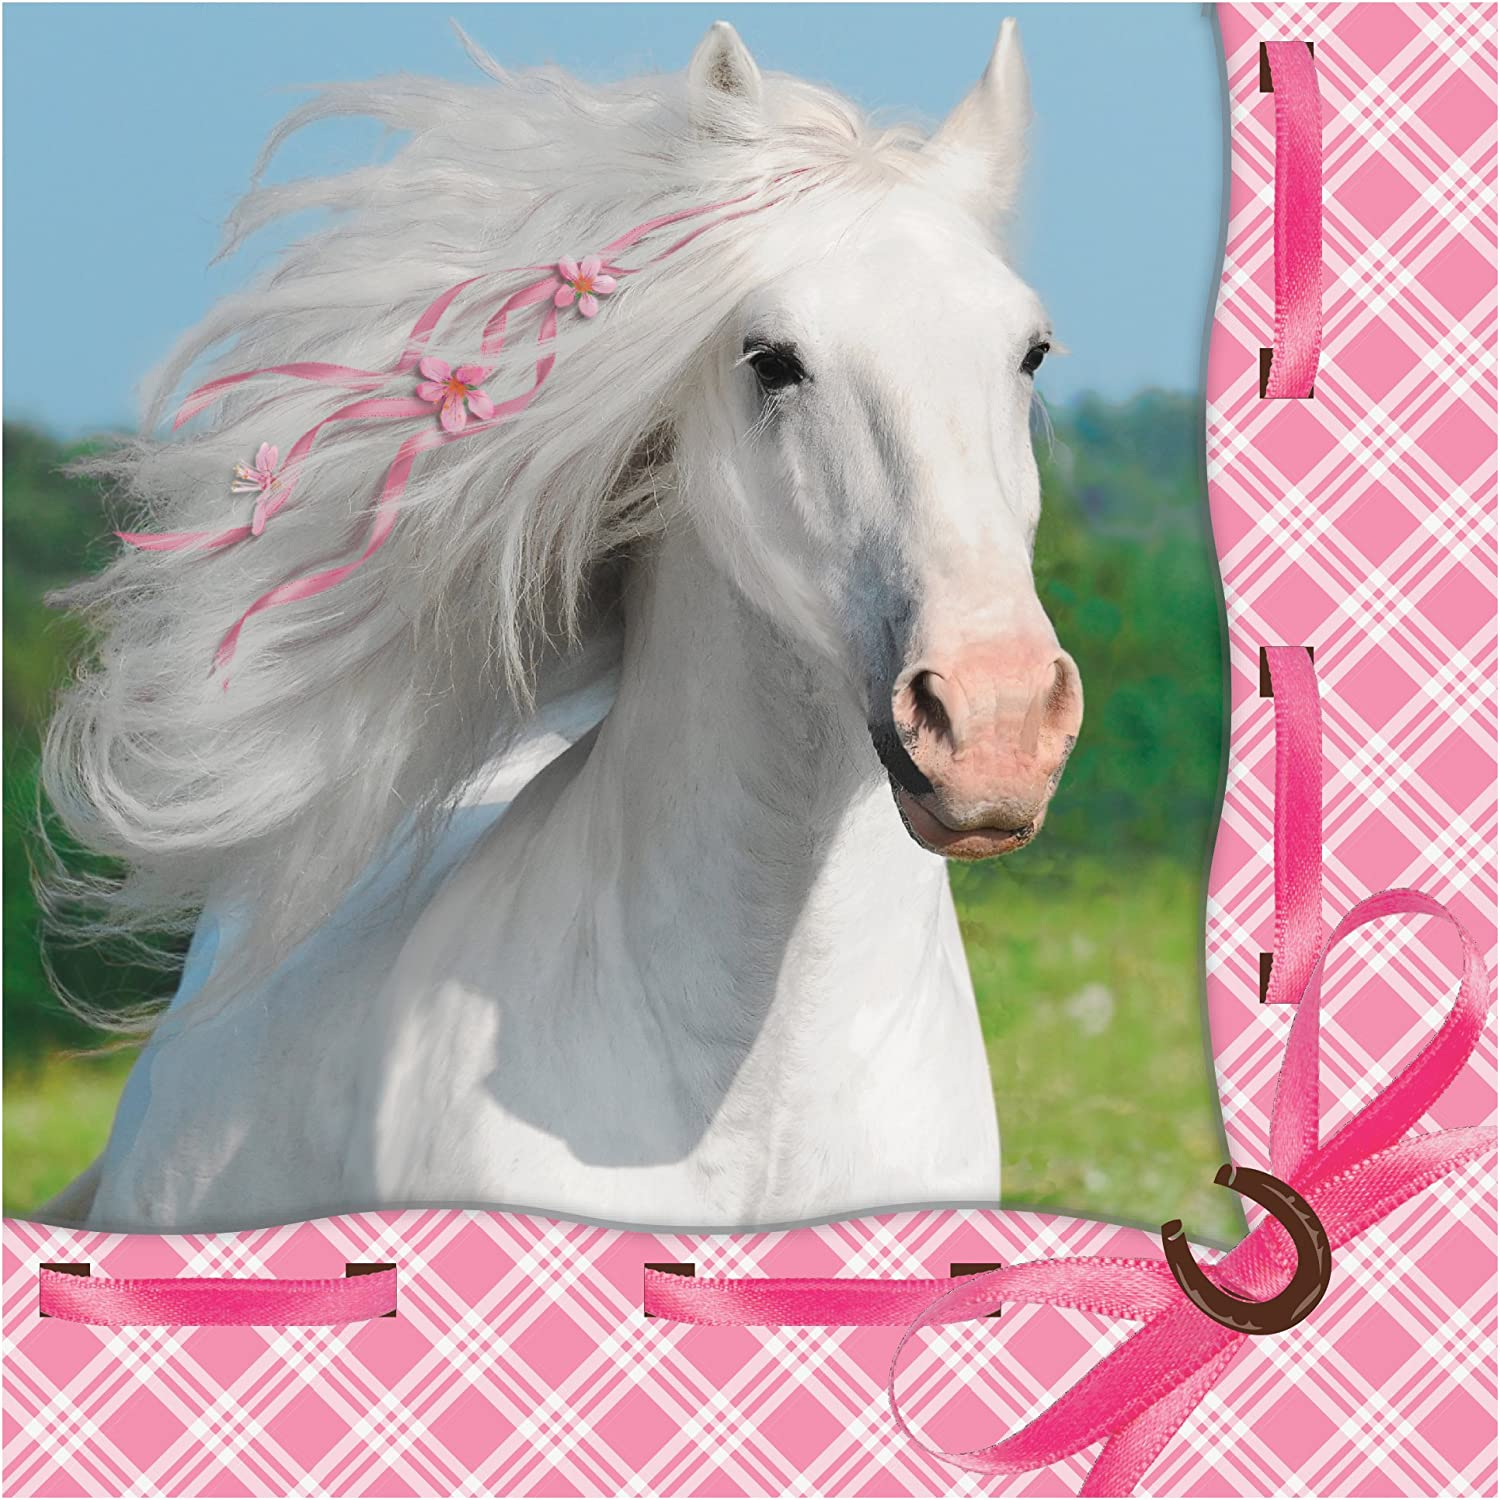 Creative Converting 16 Count Heart My Horse 3-Ply Beverage Napkins, White/Pink, 655601